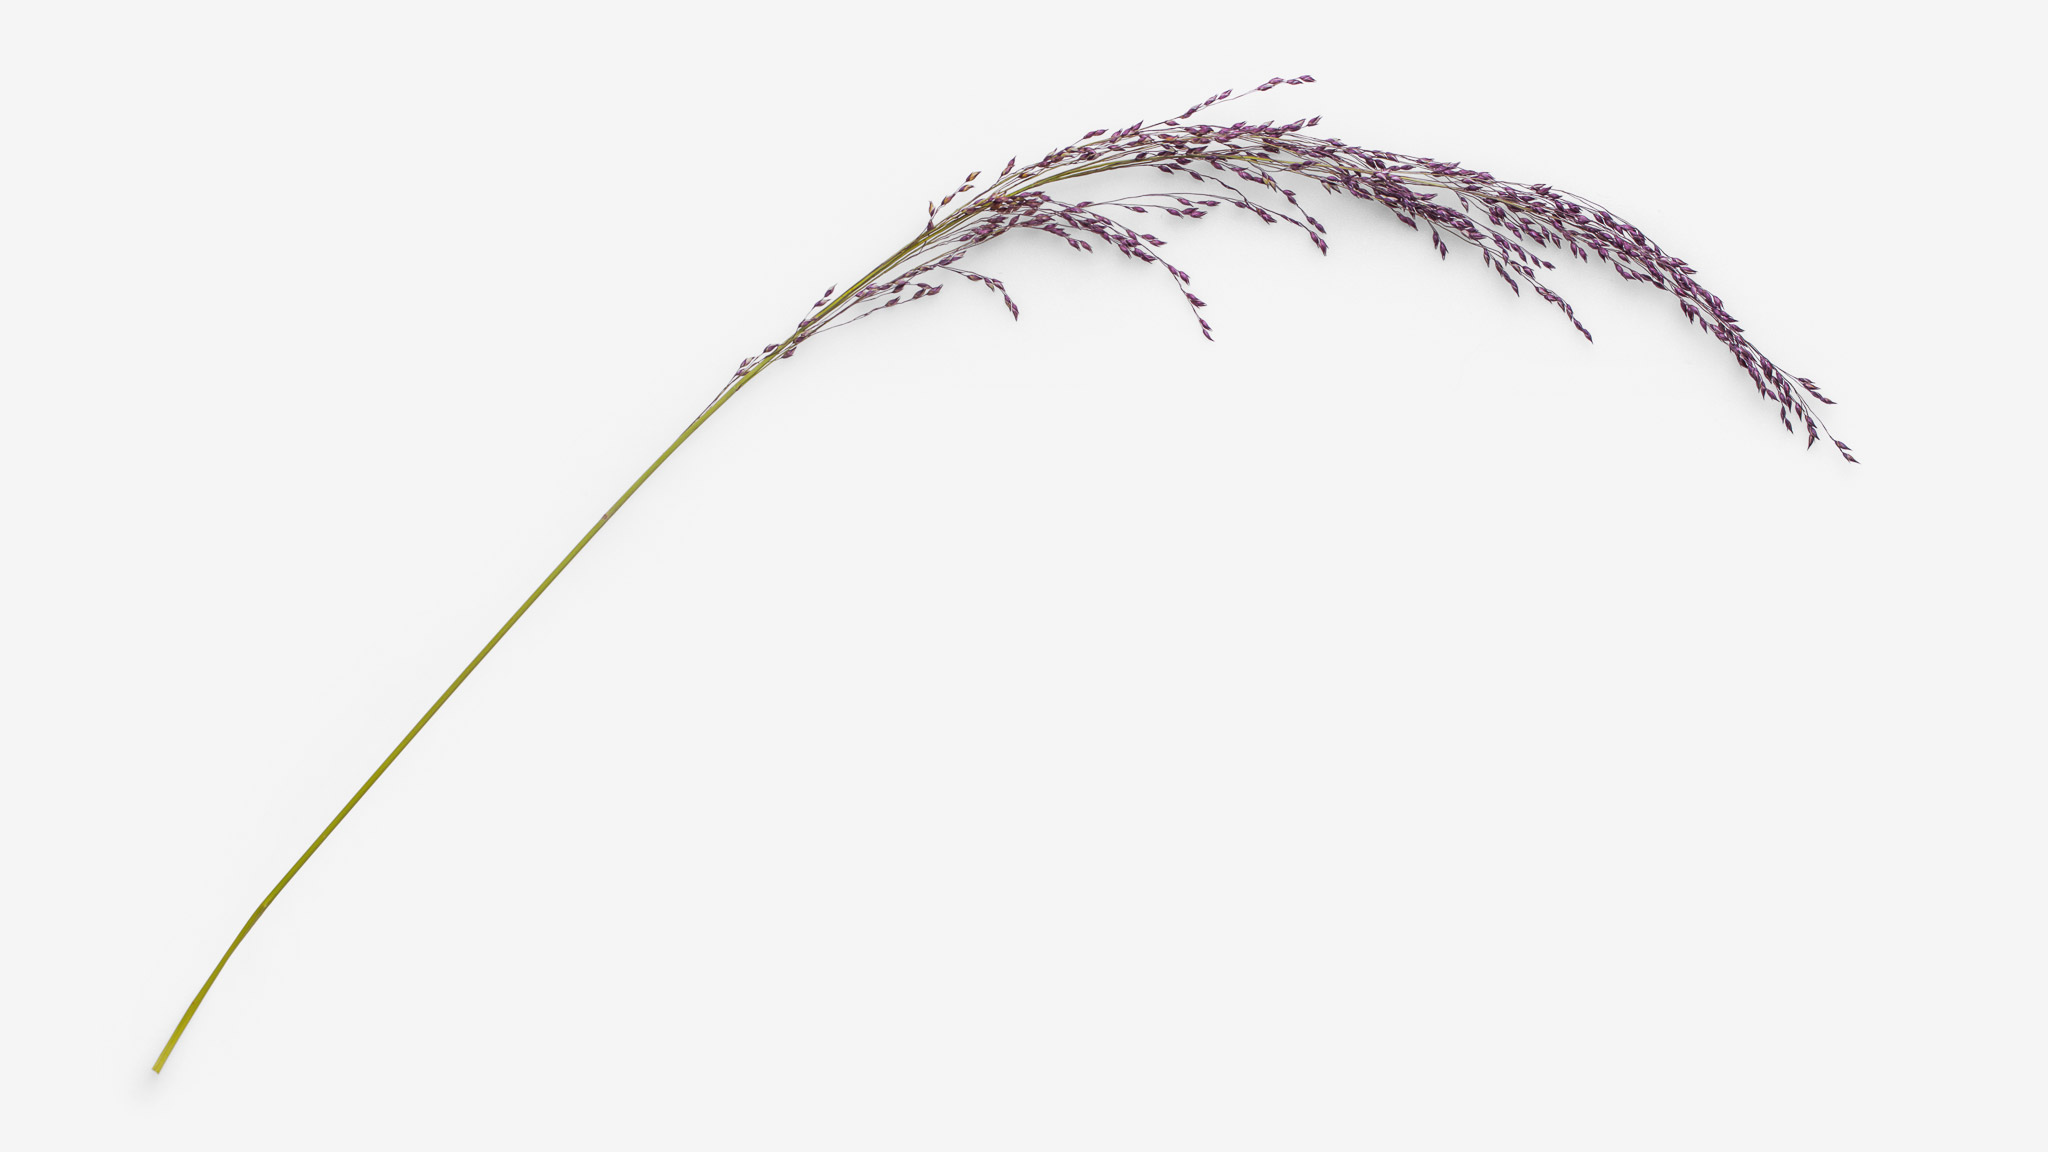 Spikelet PSD image with transparent background